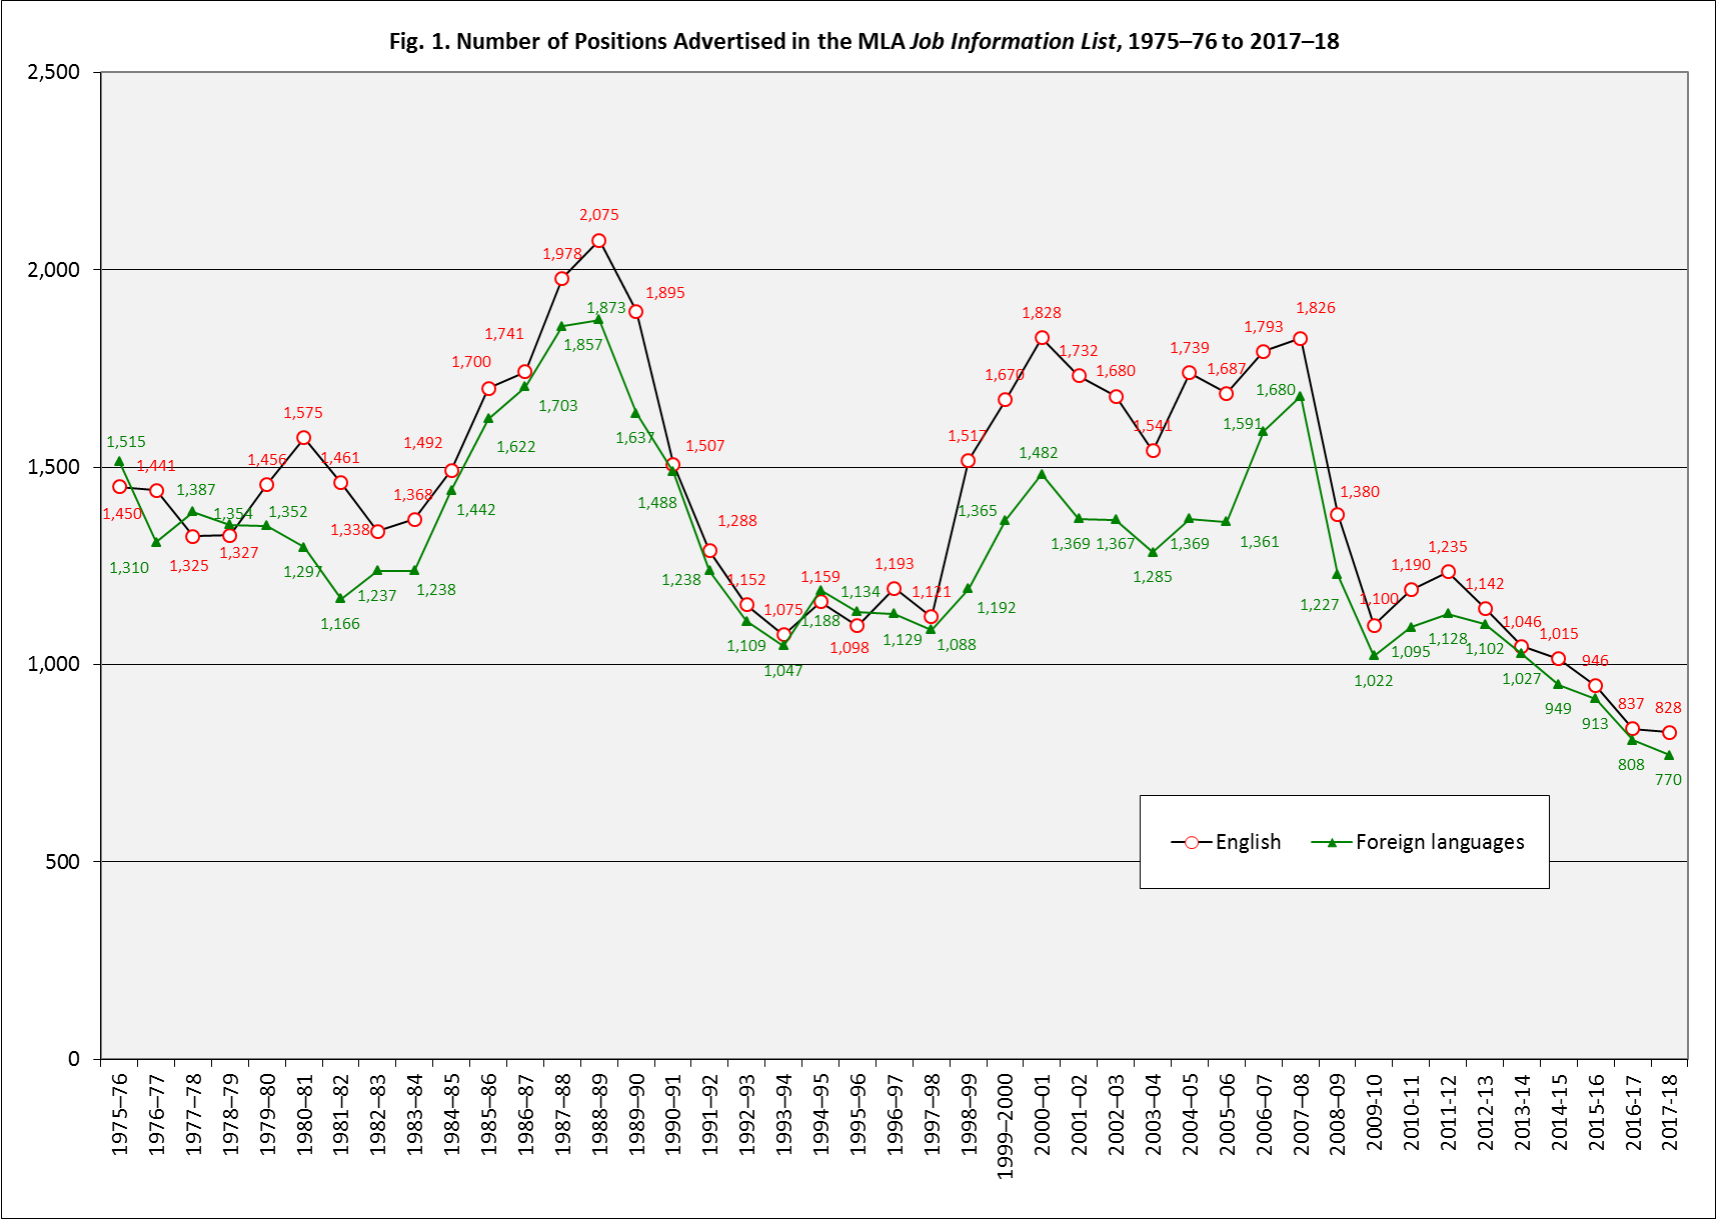 Fig. 1. Number of Positions Advertised in the MLA Job Information List, 1975–76 to 2017–18. The figure shows a recent downward trend for both English and foreign languages in the number of positions advertised in the JIL.